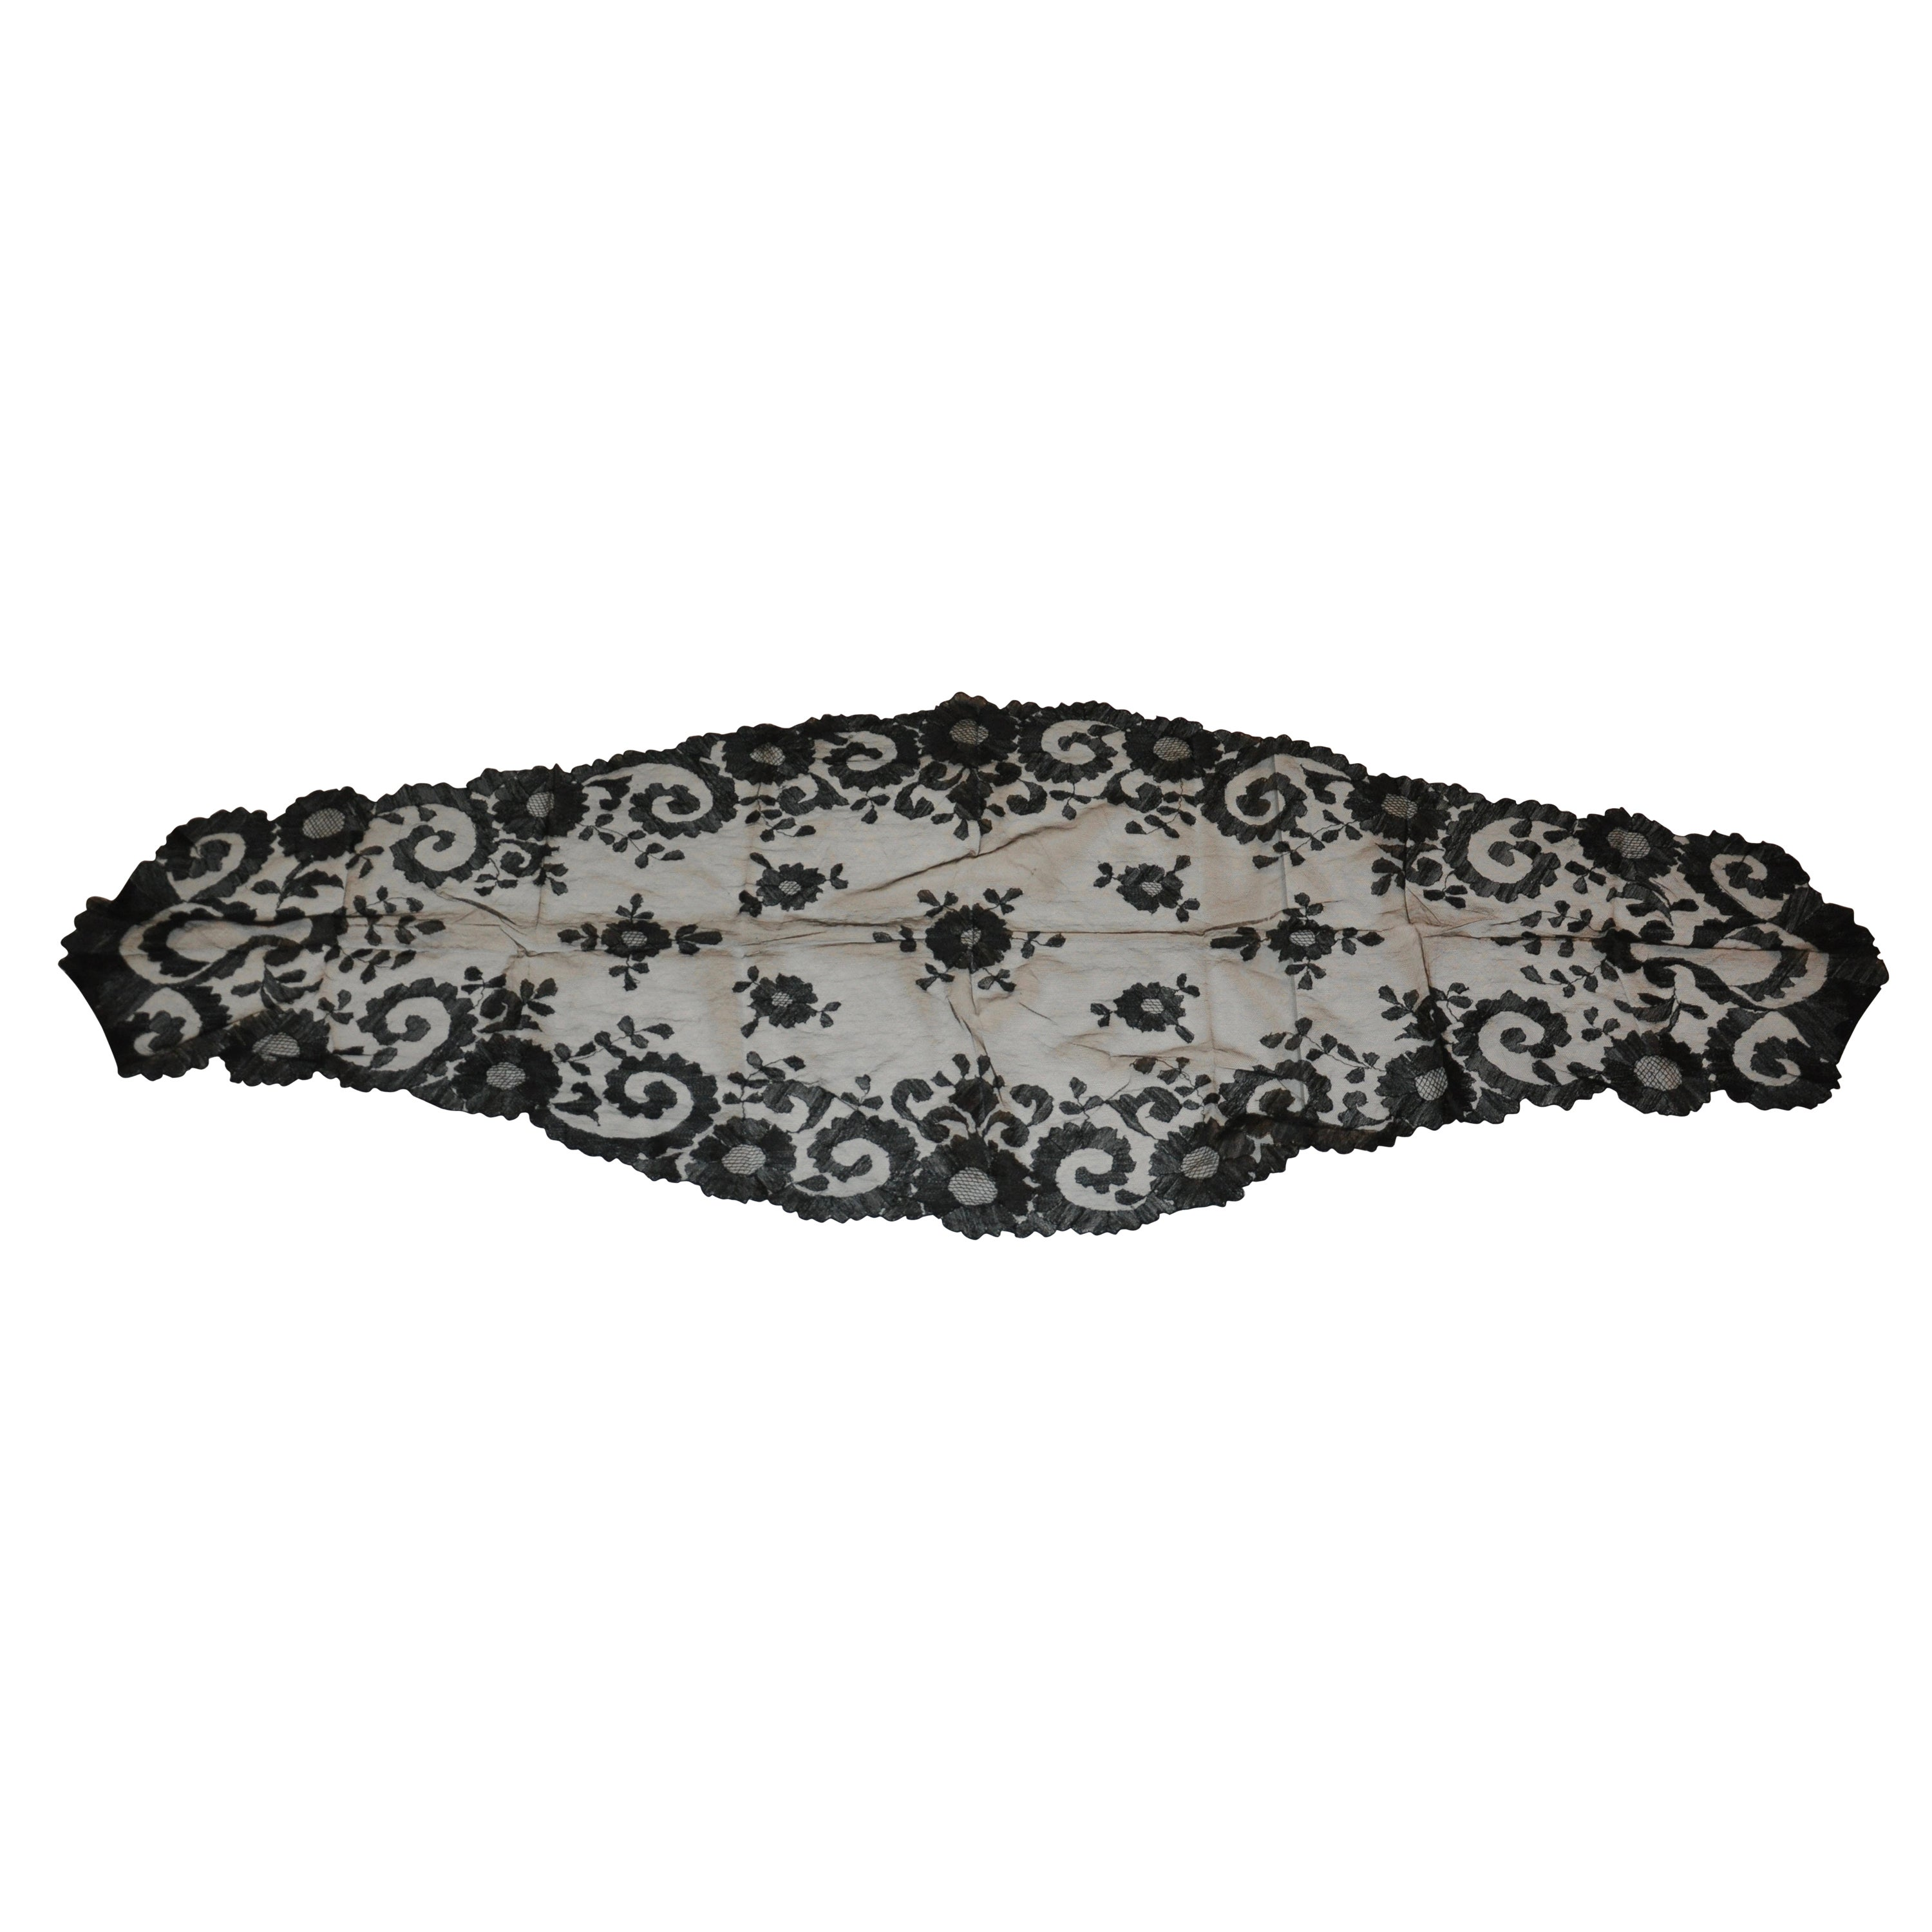 Rare Black Hand-Woven French Lace with Scallop Edges Shawl